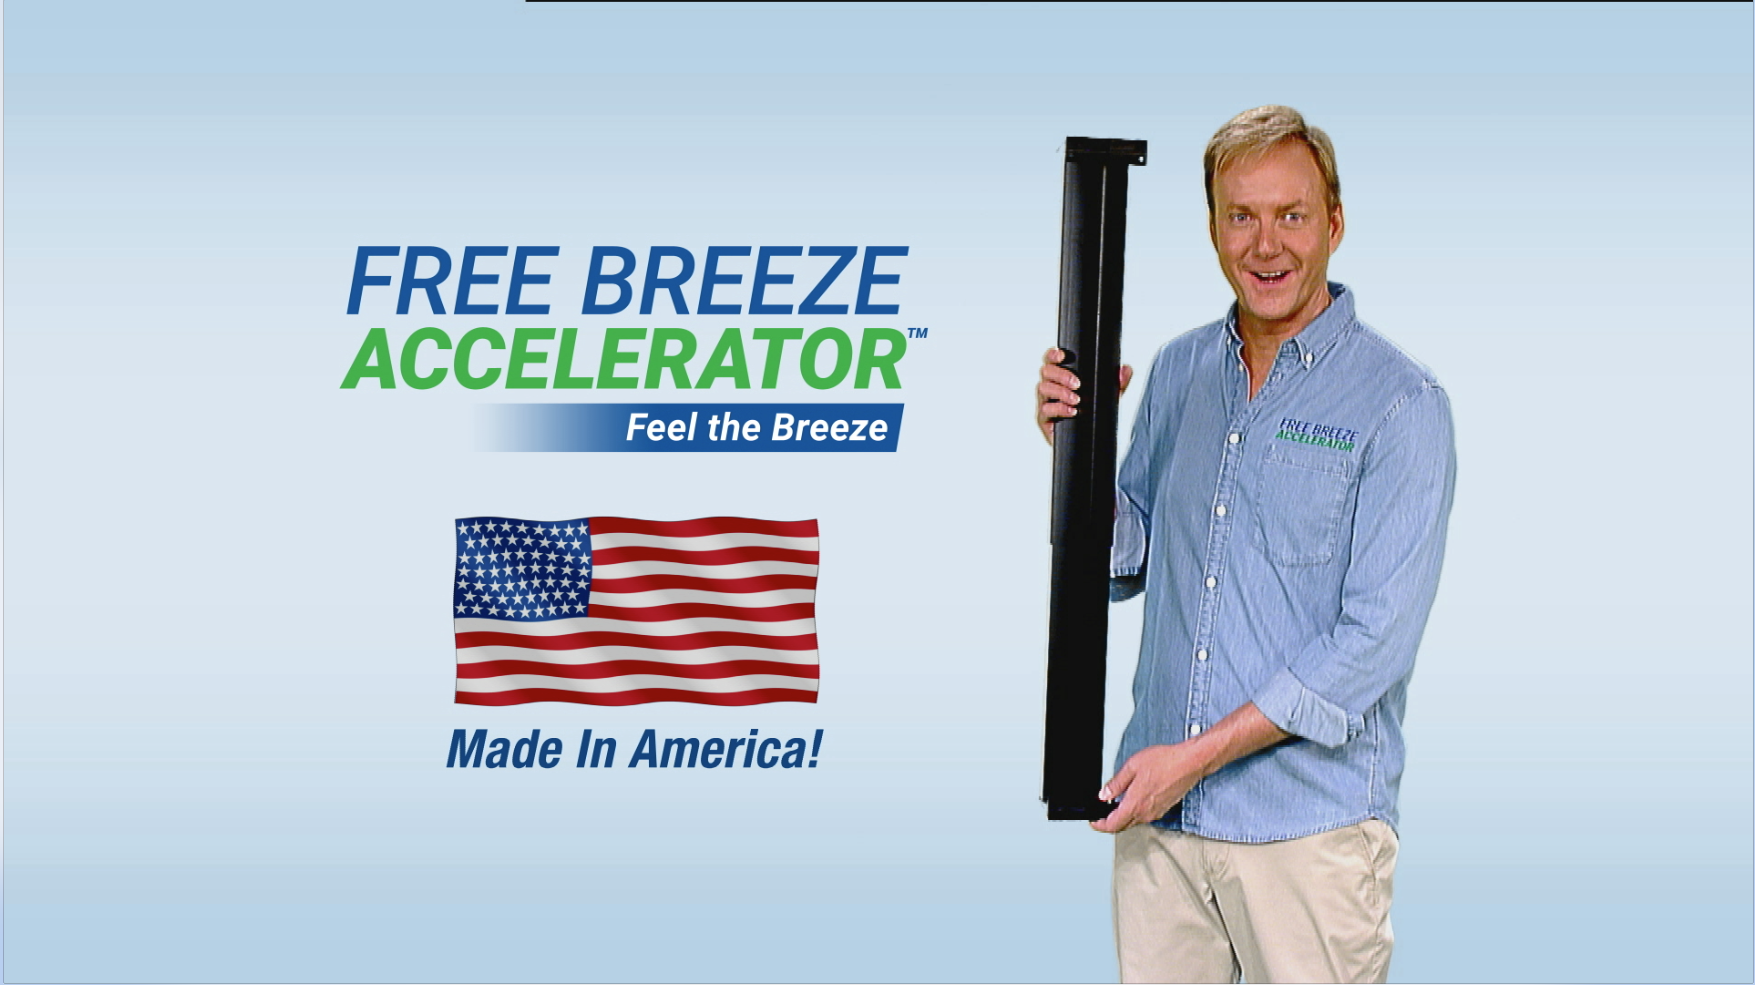 Free Breeze Accelerator